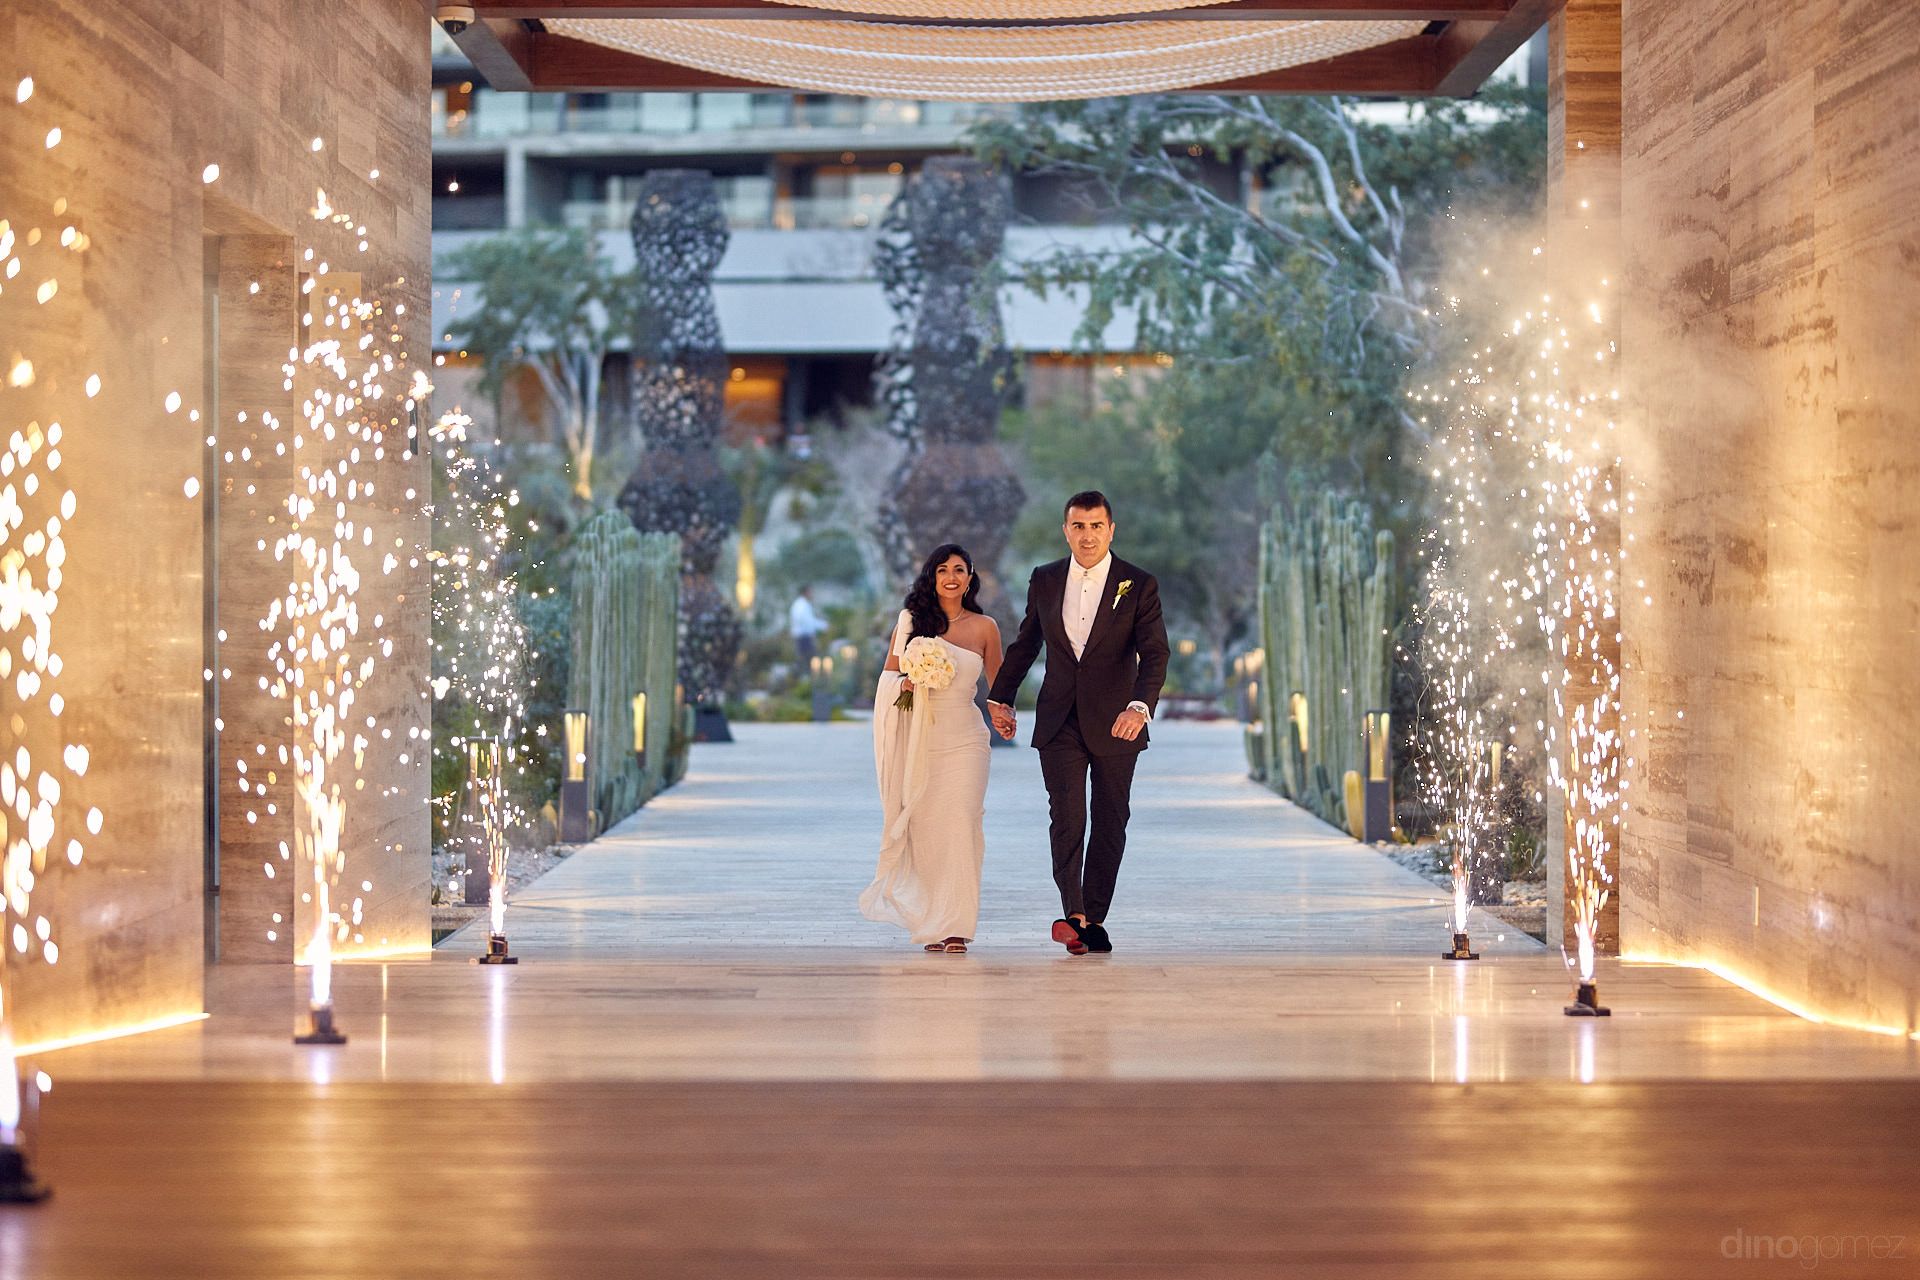 Dino Gomez Has A Passion For Documenting Special Events; One That's Apparent To All Of Those Around Him. Dino's Attention To Detail Allows Couples To Relive Their Wedding Days Through His Images